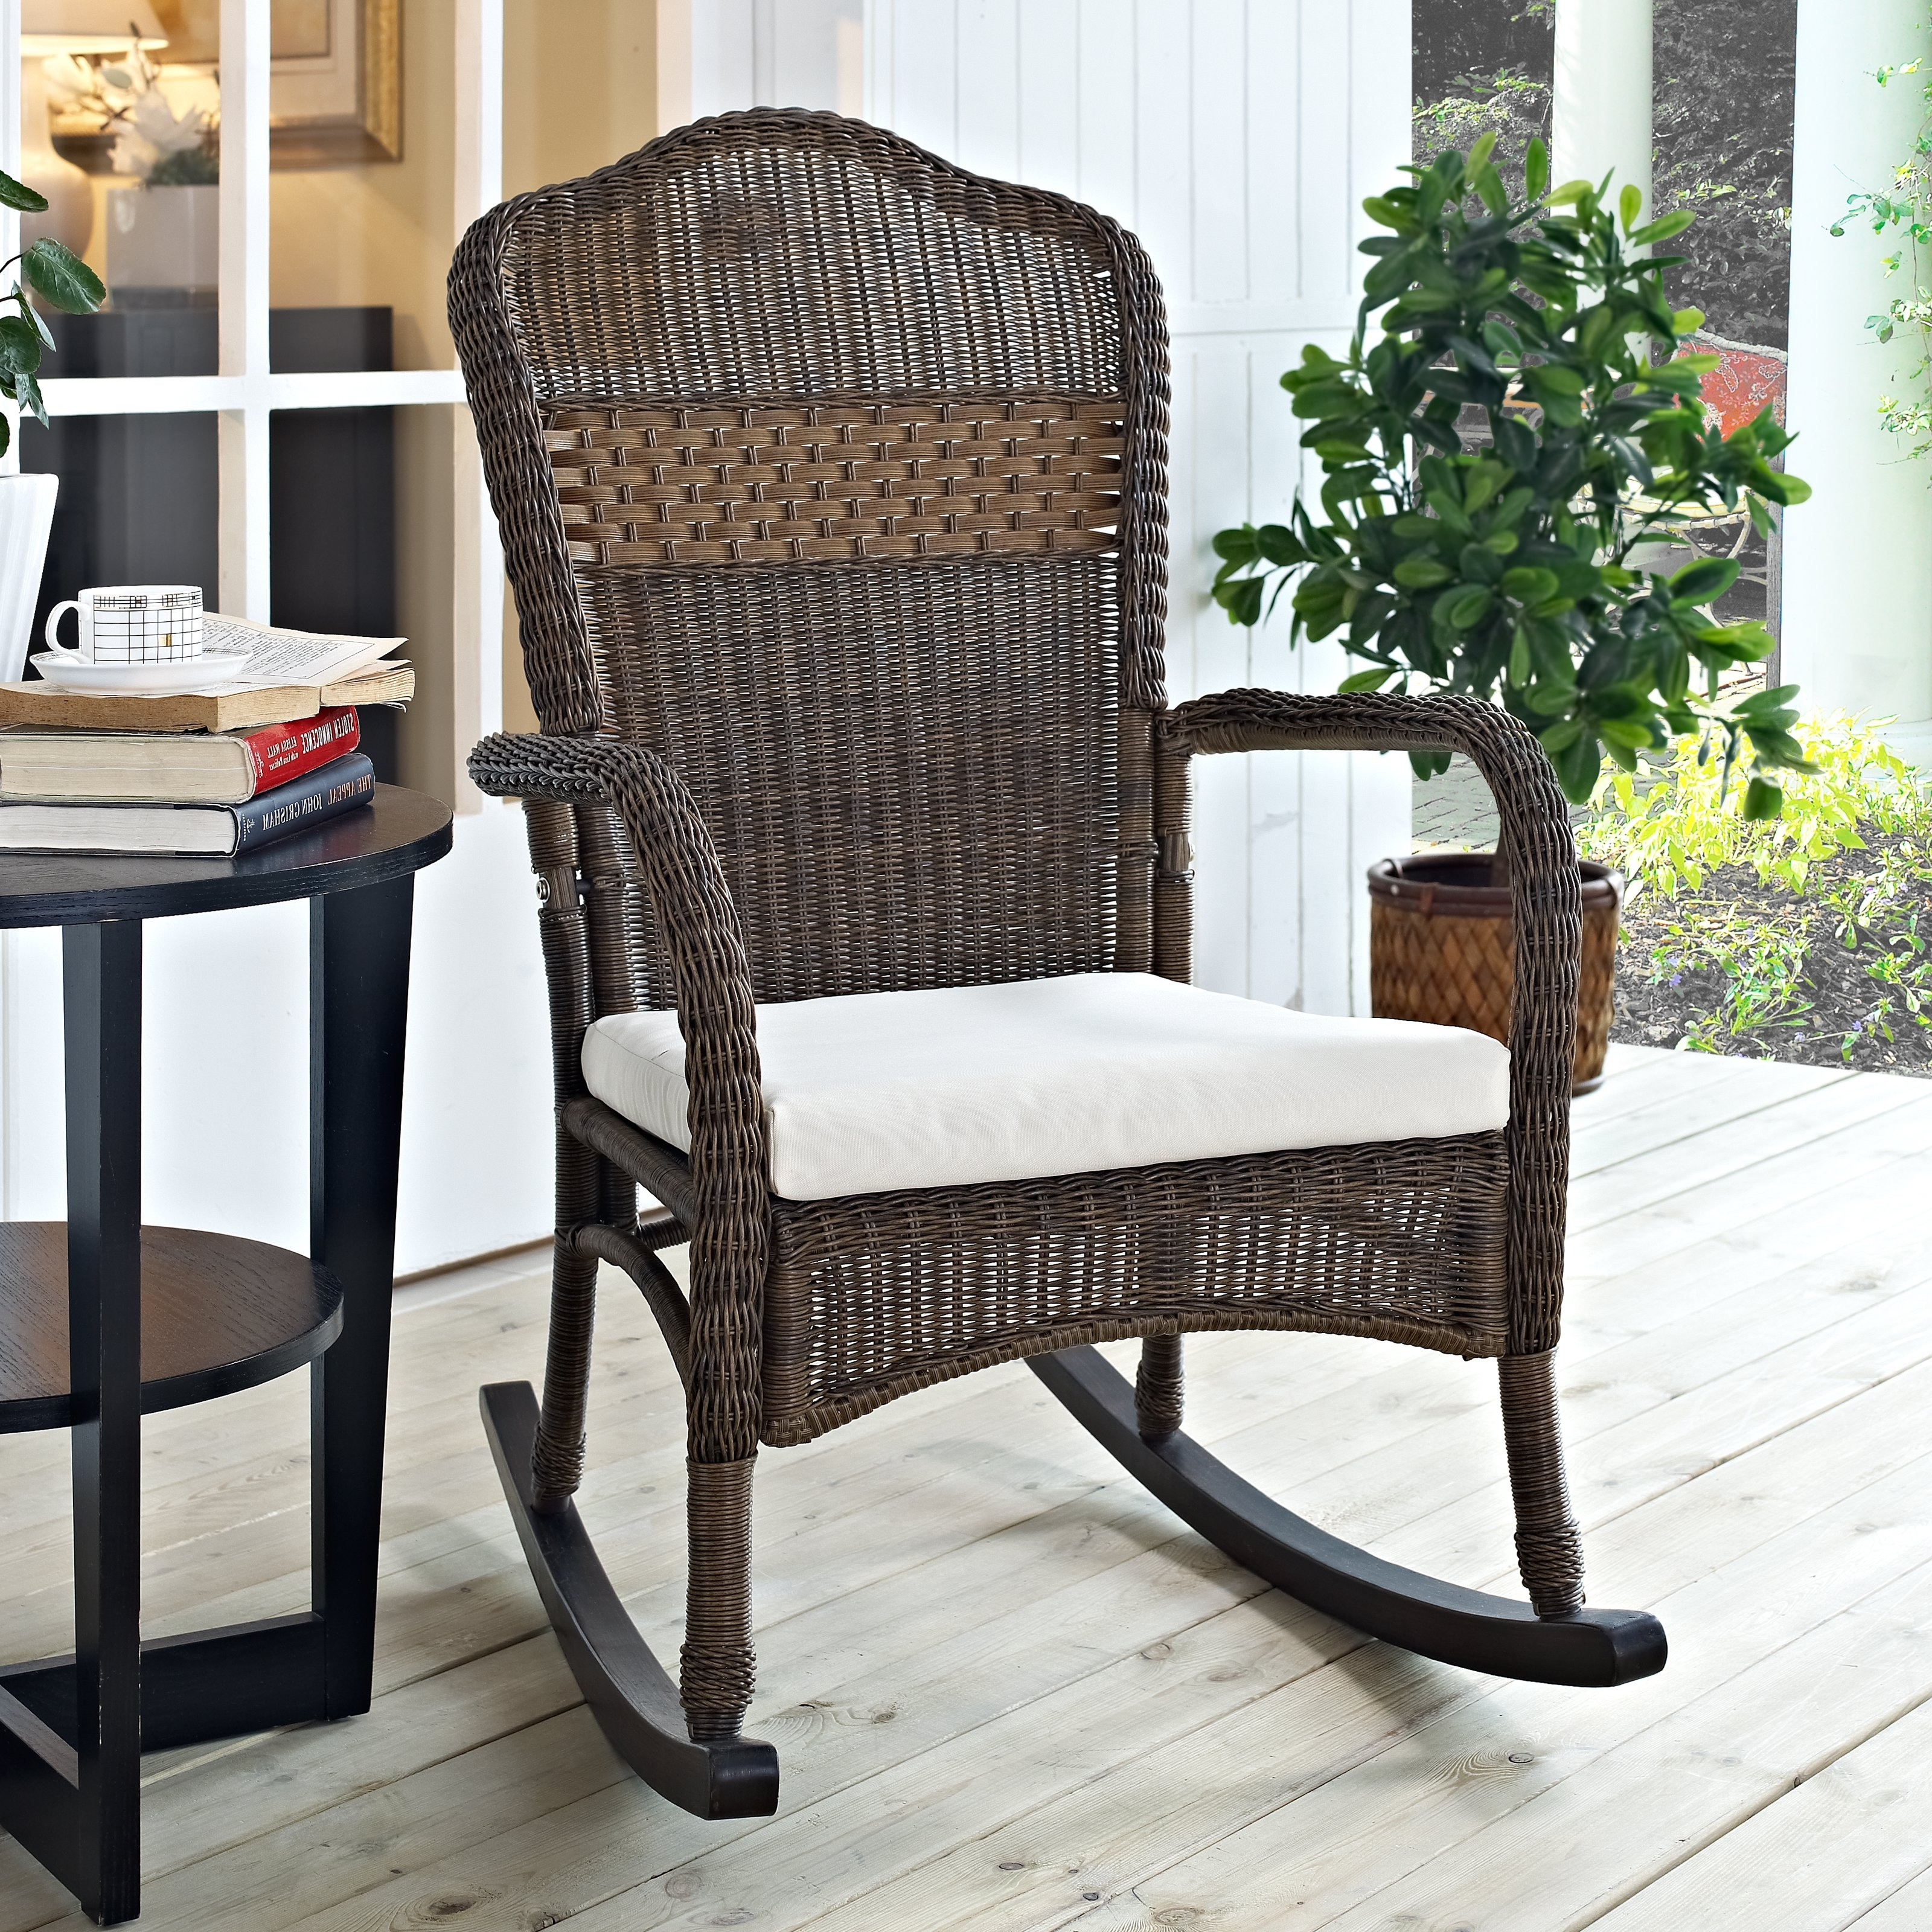 Favorite Rocking Chair Cushions For Outdoor In Outdoor Wicker Rocking Chair Cushions – Outdoor Designs (View 6 of 15)